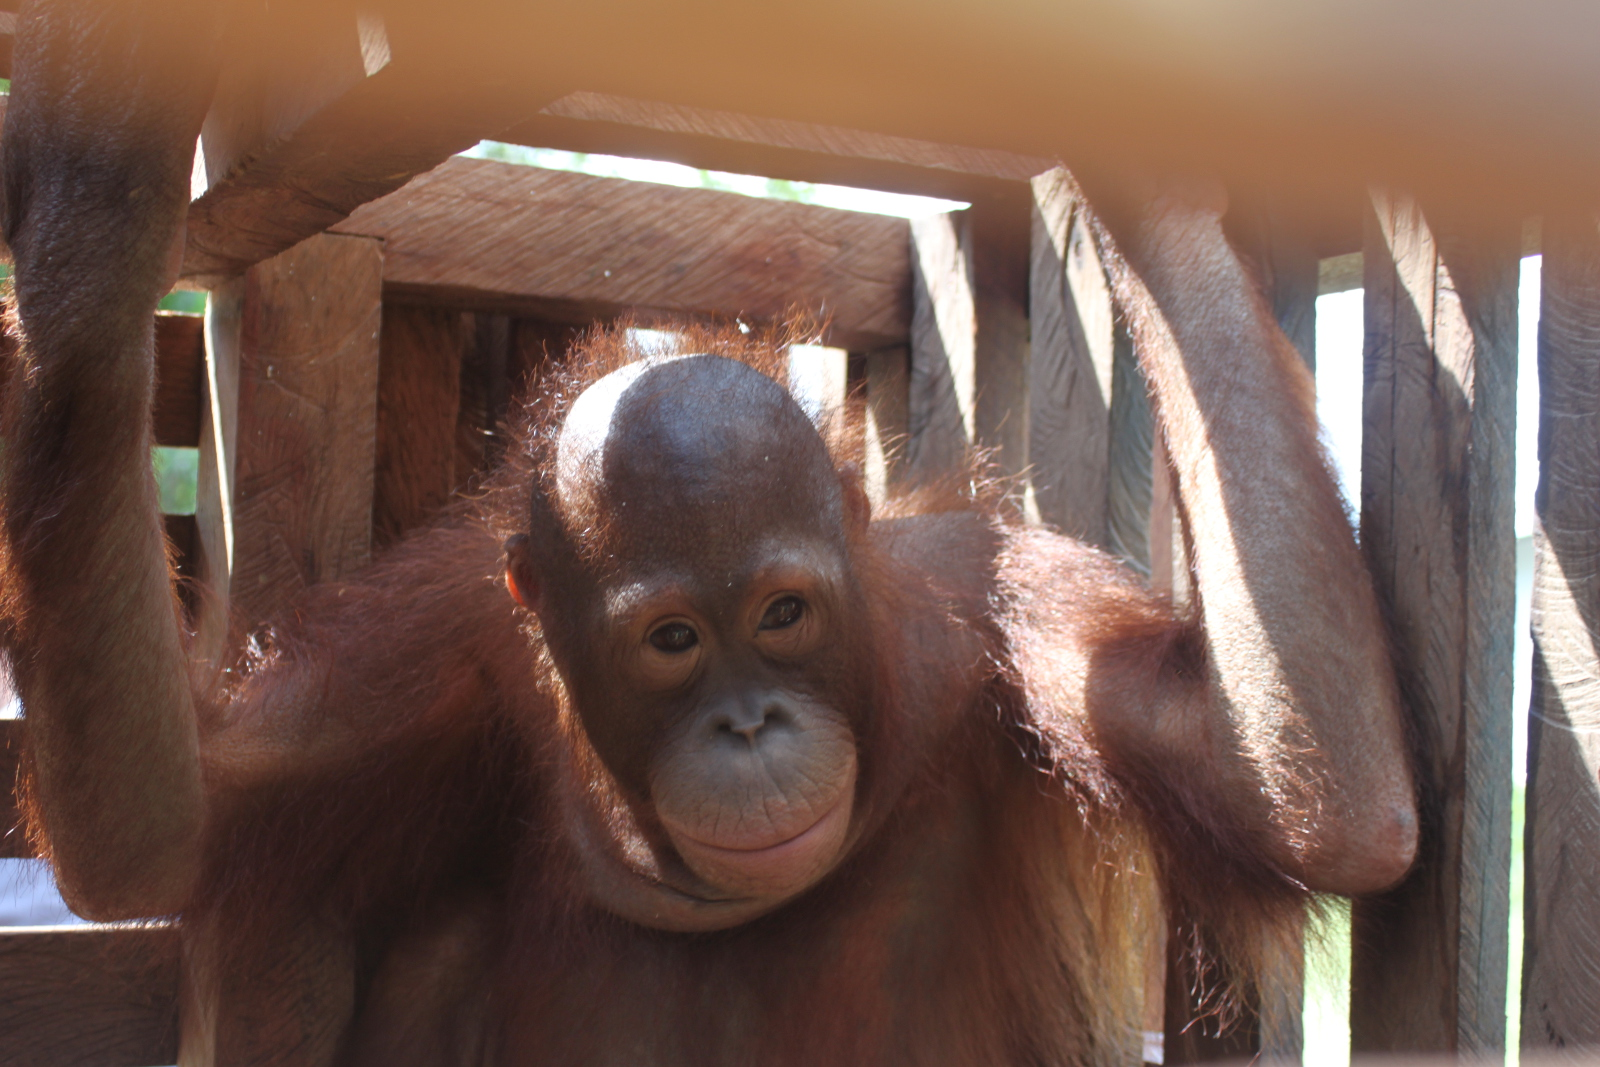 Meet Obi and Muria, two Tiny Orangutans That Were Left Helpless at the Hands of the Palm Oil Industry